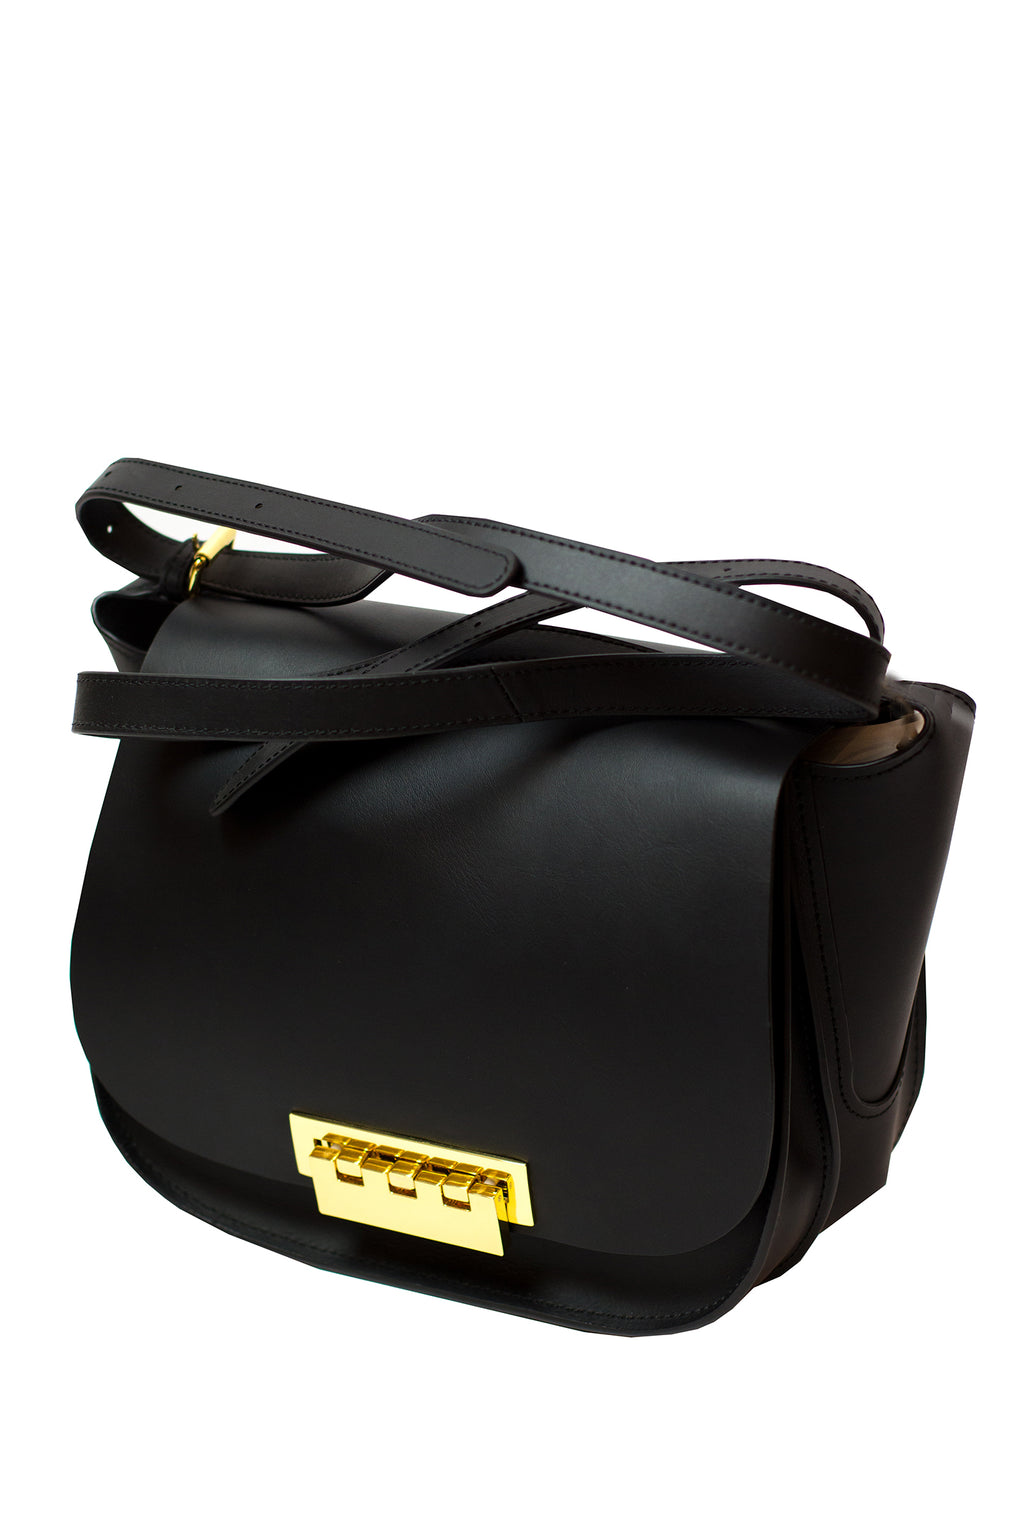 Z  Spoke - Eartha iconic saddle bag